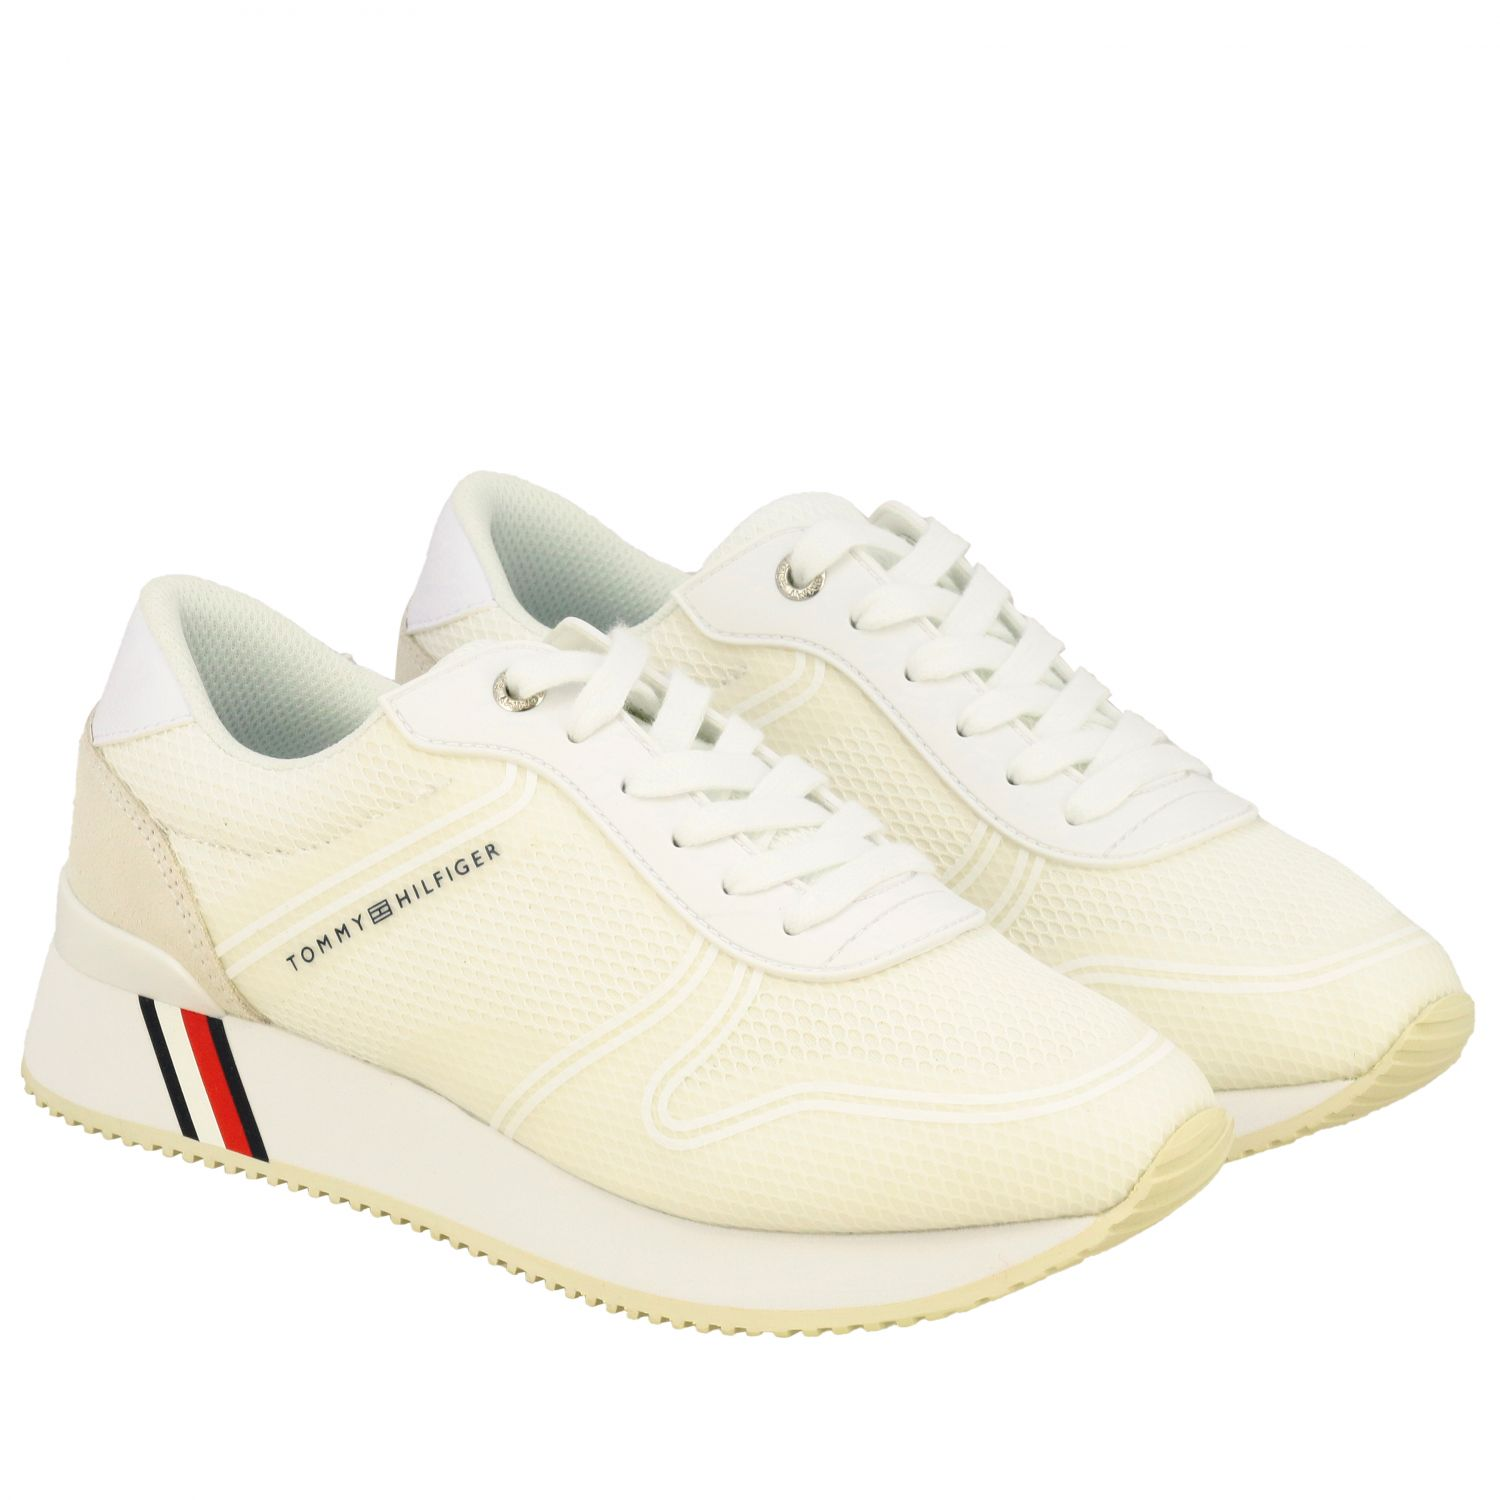 Sneakers donna Tommy Hilfiger bianco 2